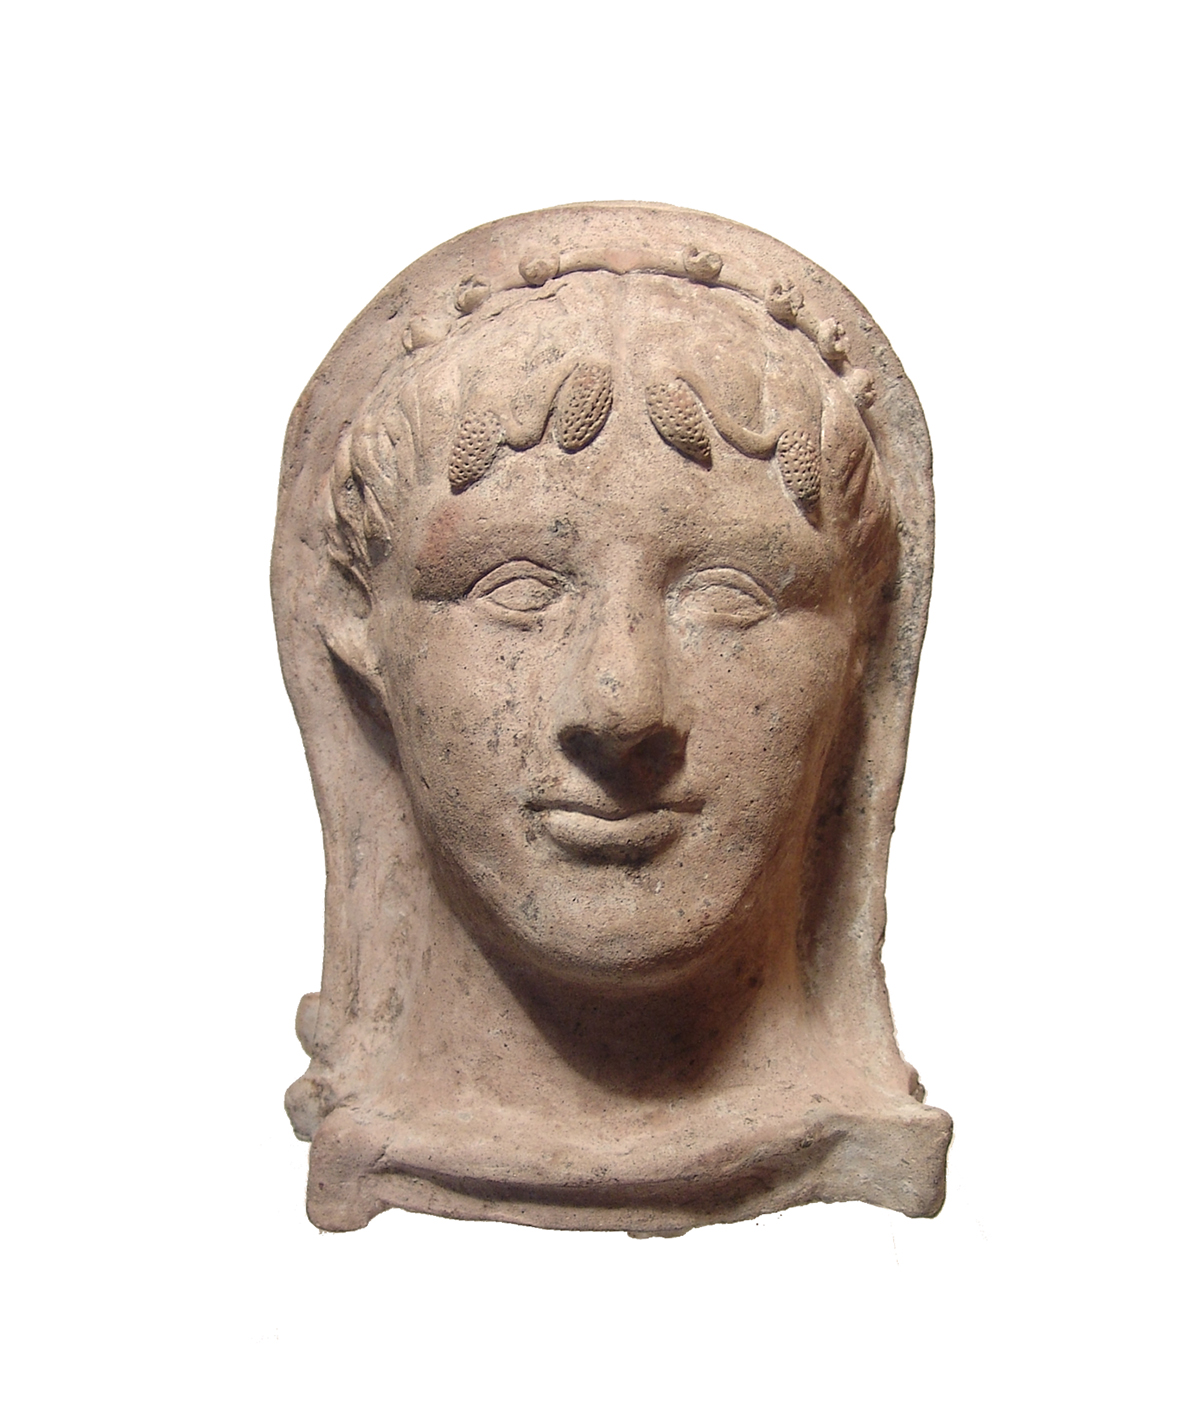 Marvelous and intact Etruscan terracotta head of a man from the 3rd century BC, 10 inches tall and with features that are wonderfully modeled in high relief (est. $5,000-$7,000).